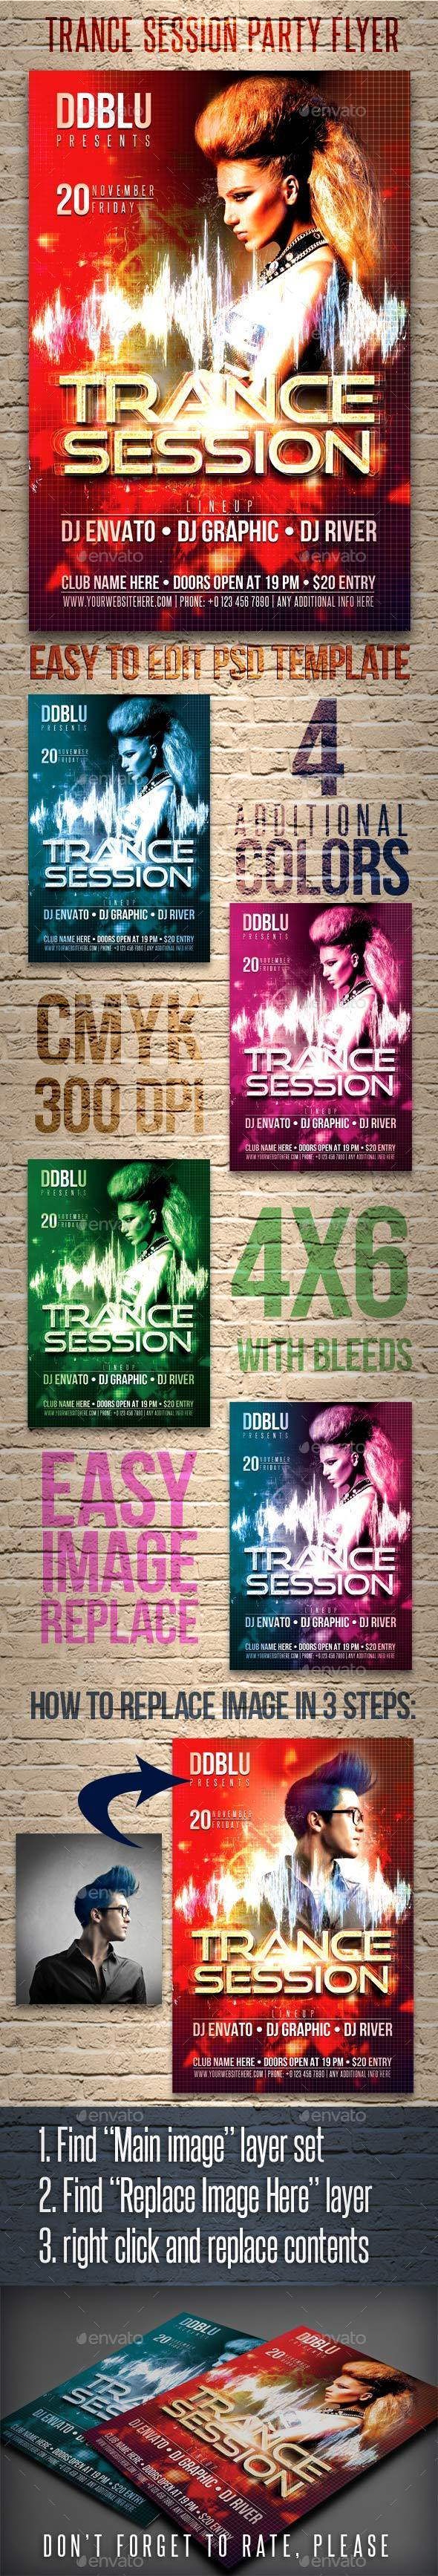 Trance Session Flyer - Clubs & Parties Events